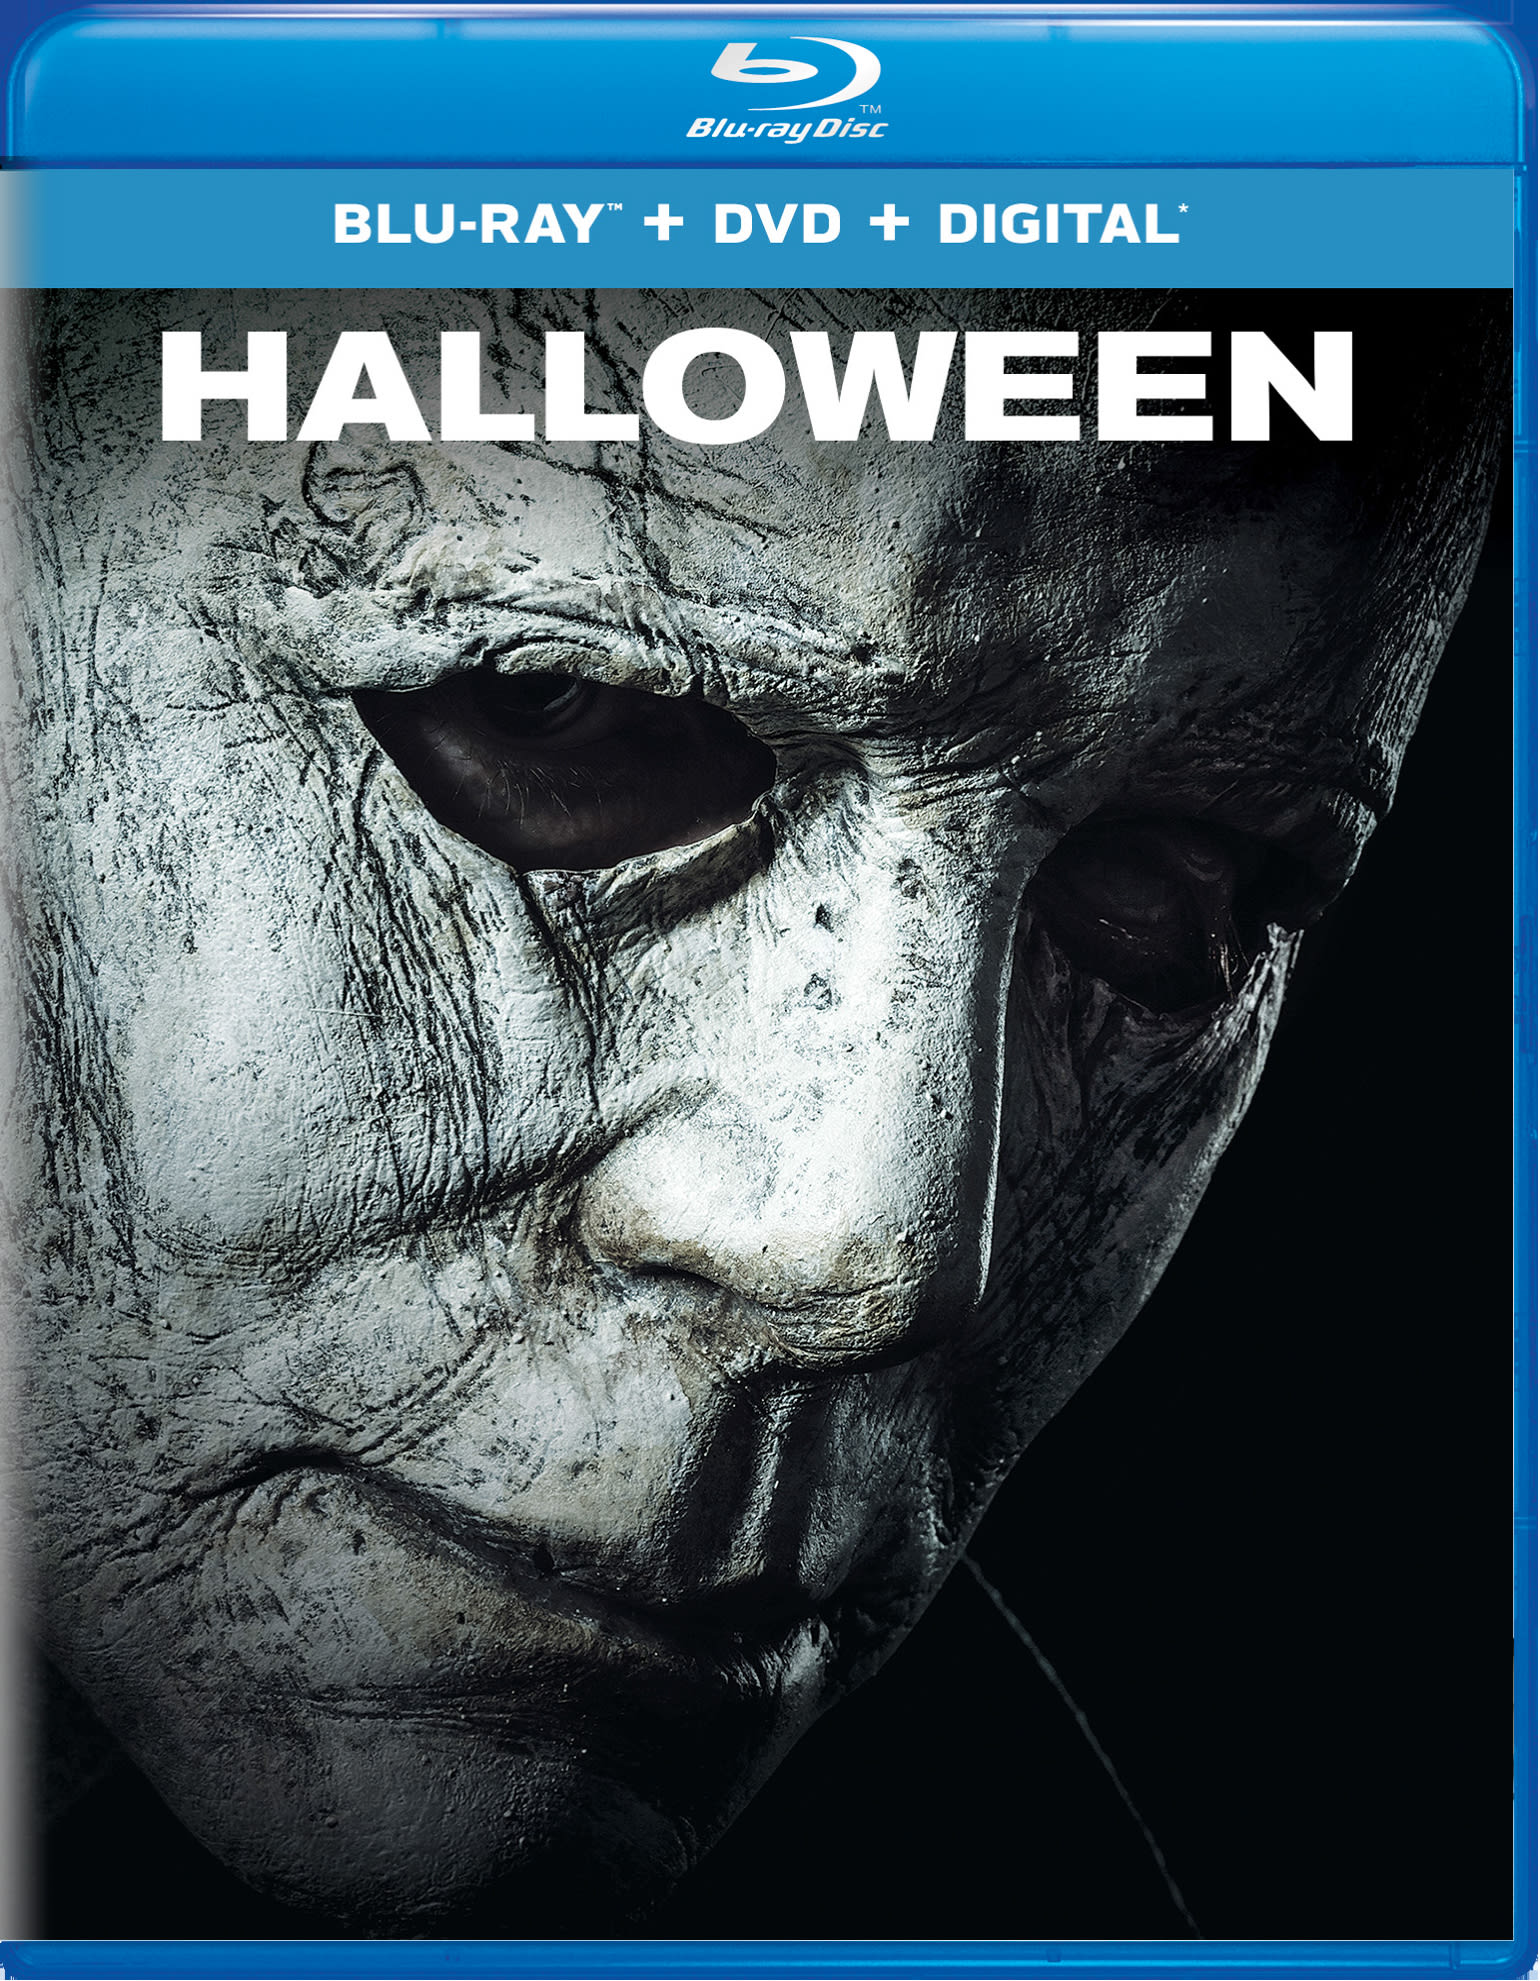 Halloween (2018) (DVD + Digital) [Blu-ray]